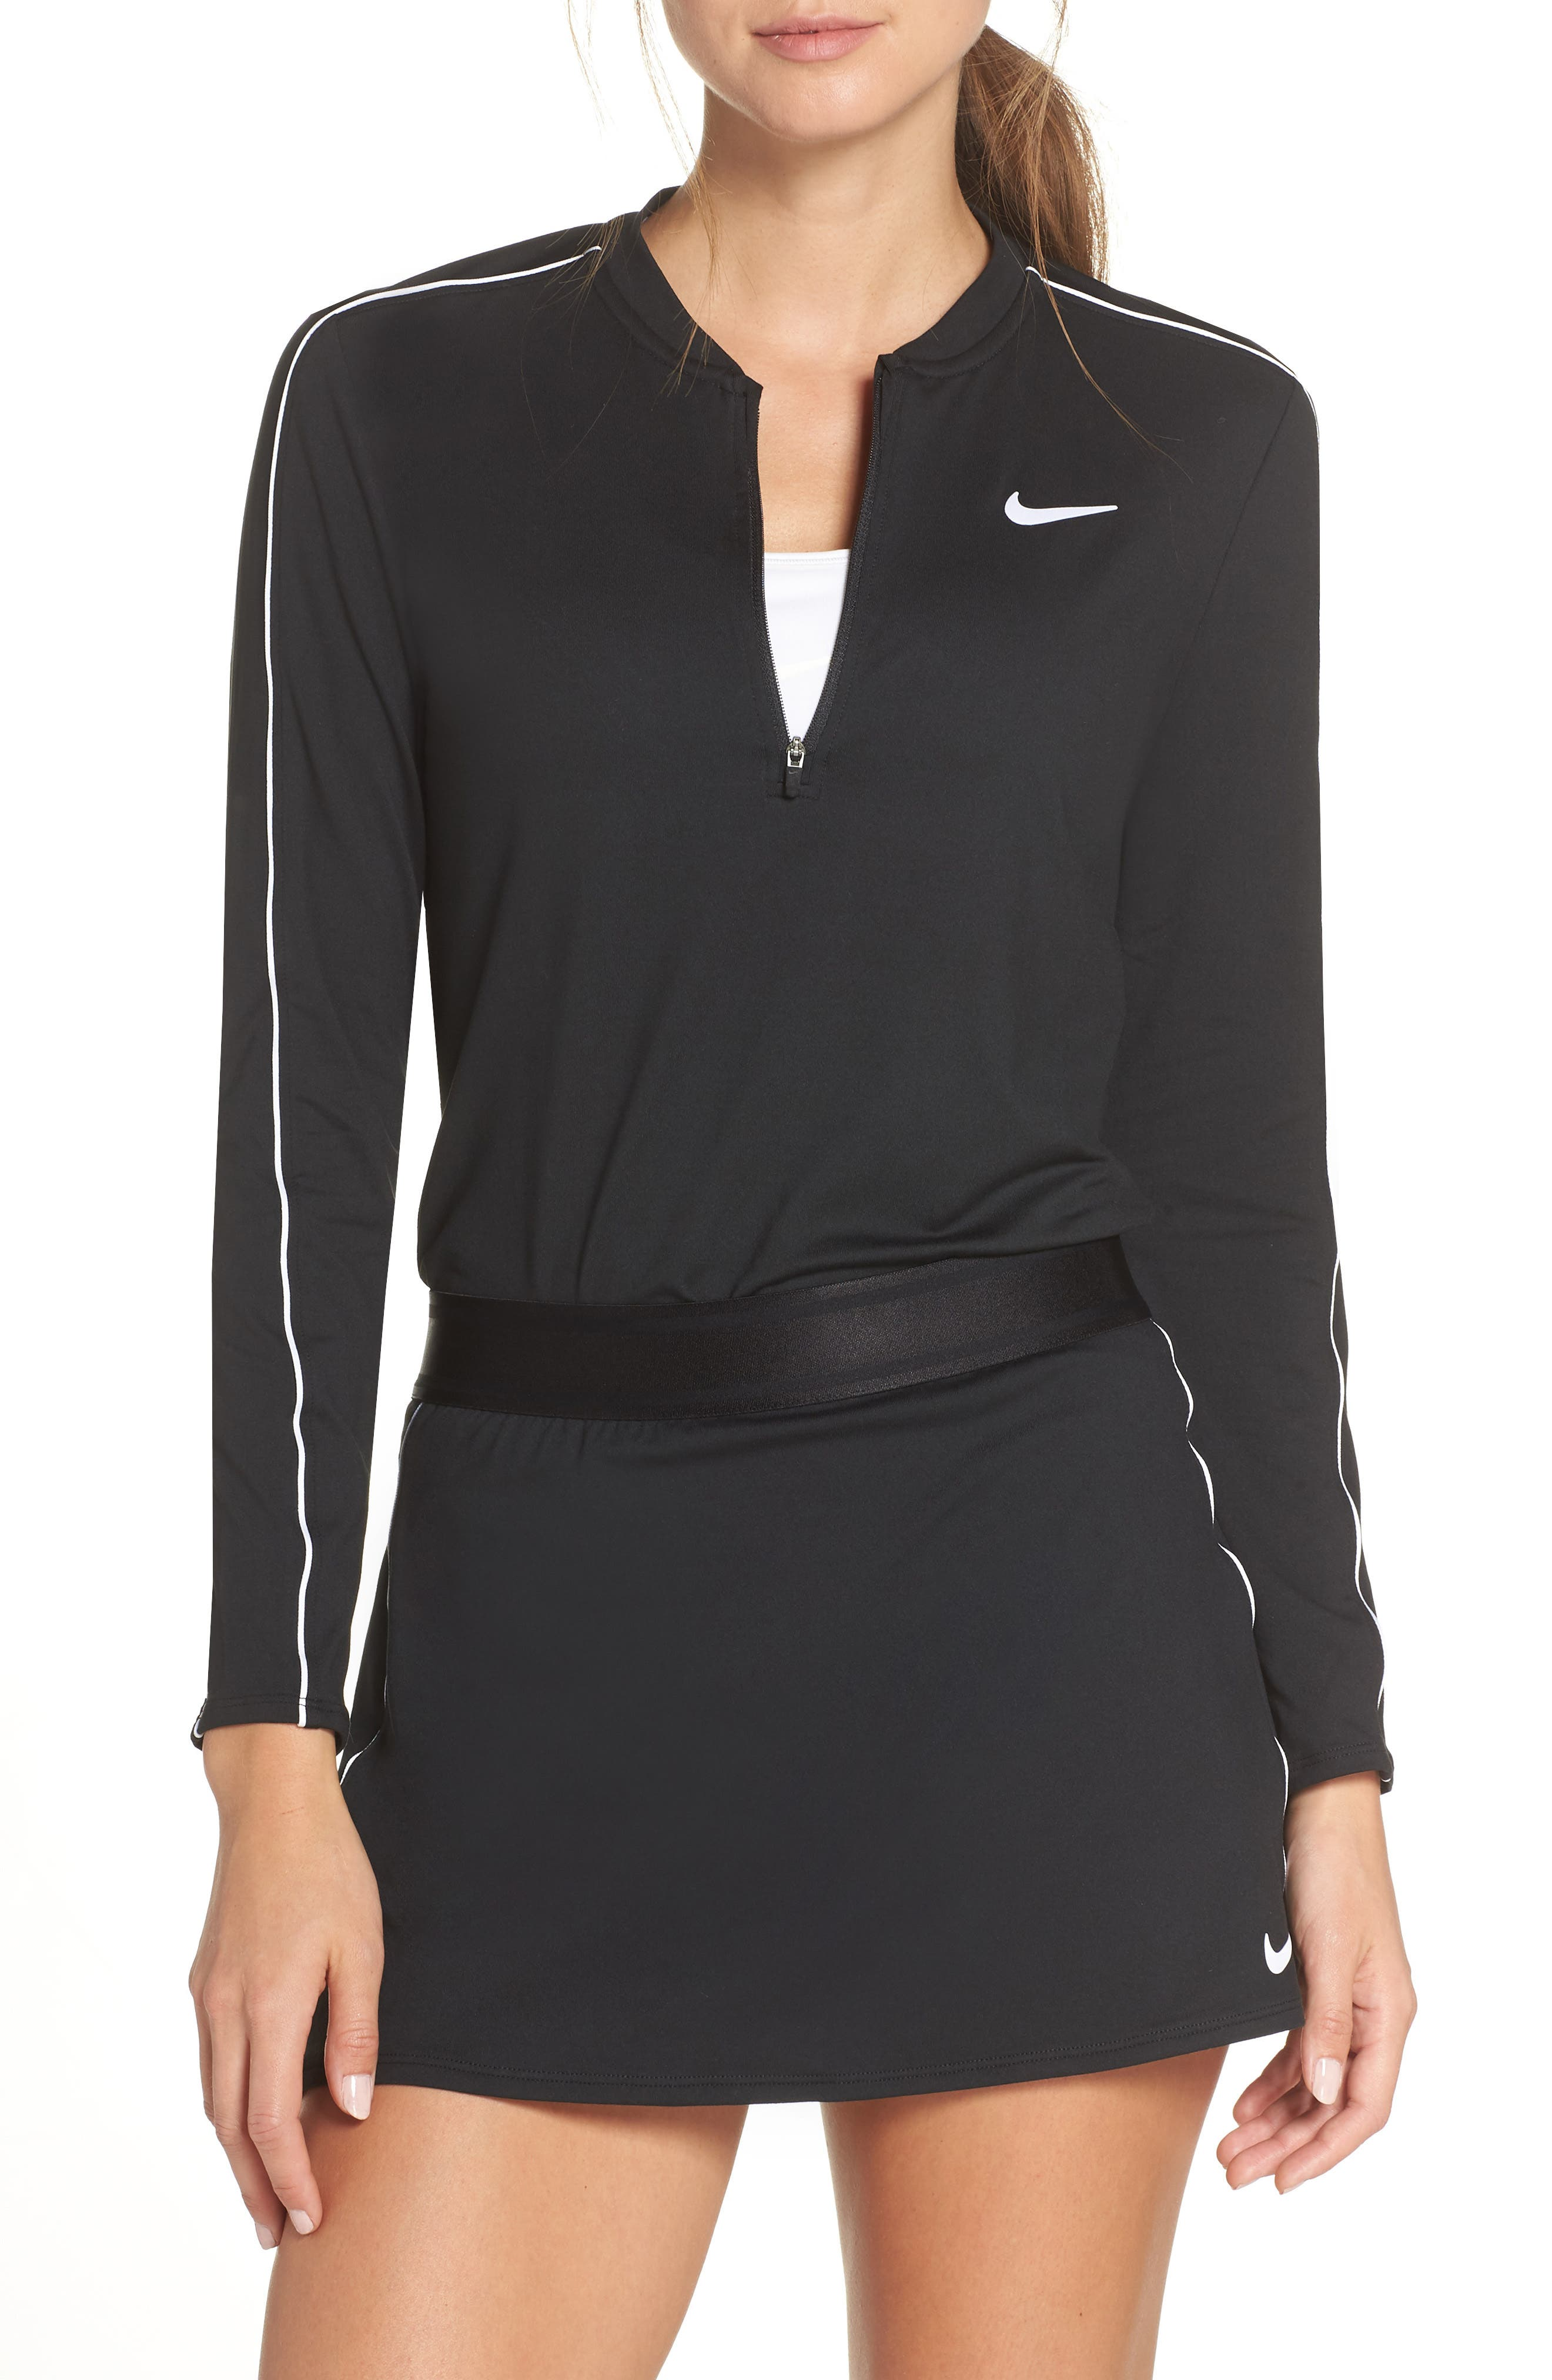 Court Dri-FIT Quarter Zip Top,                             Main thumbnail 1, color,                             BLACK/ WHITE/ WHITE/ BLACK